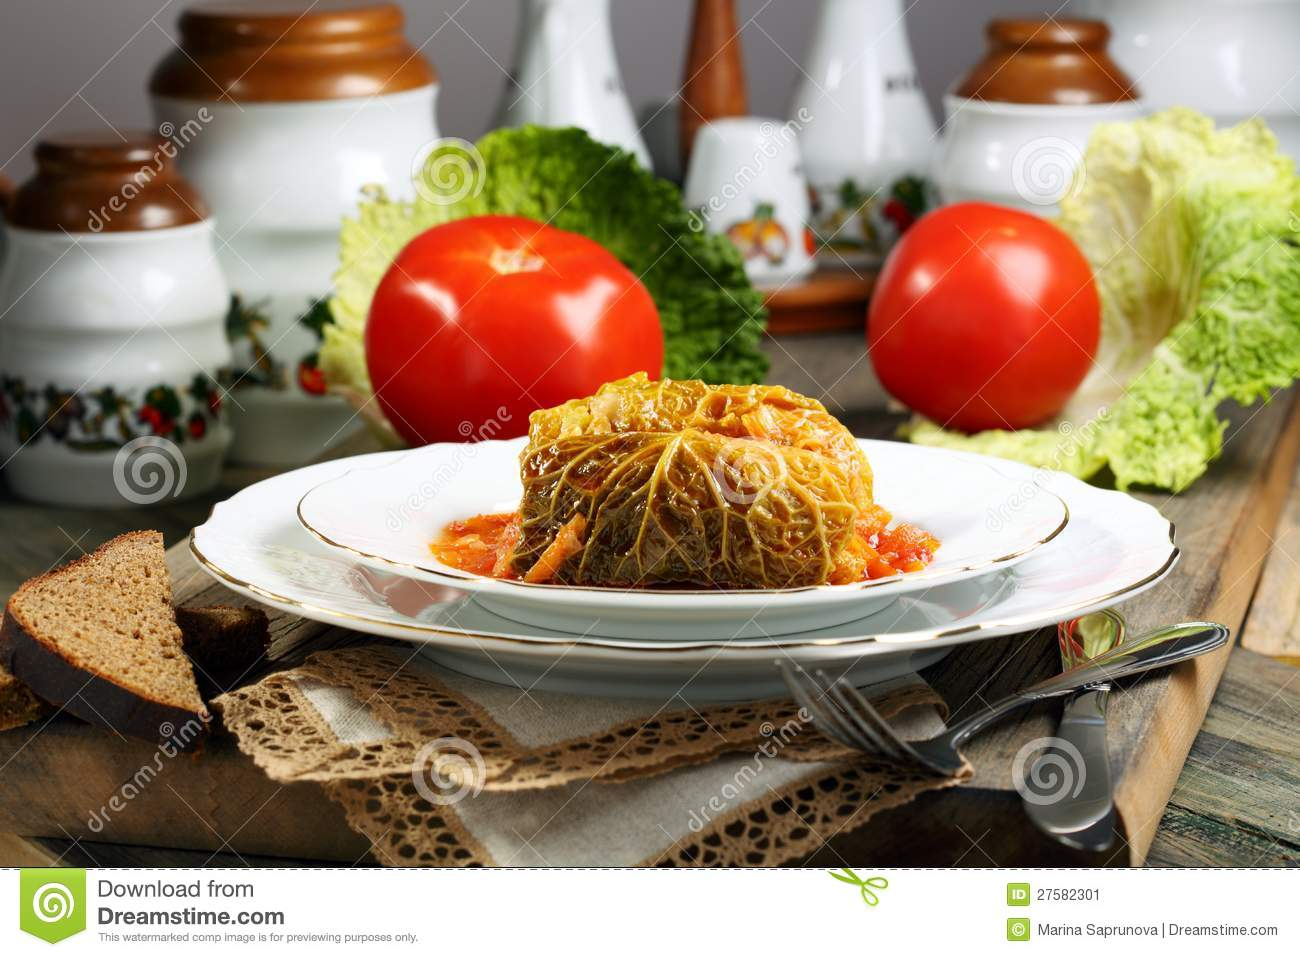 Cabbage Rolls Stuffed With Meat Stock Image Image 27582301.